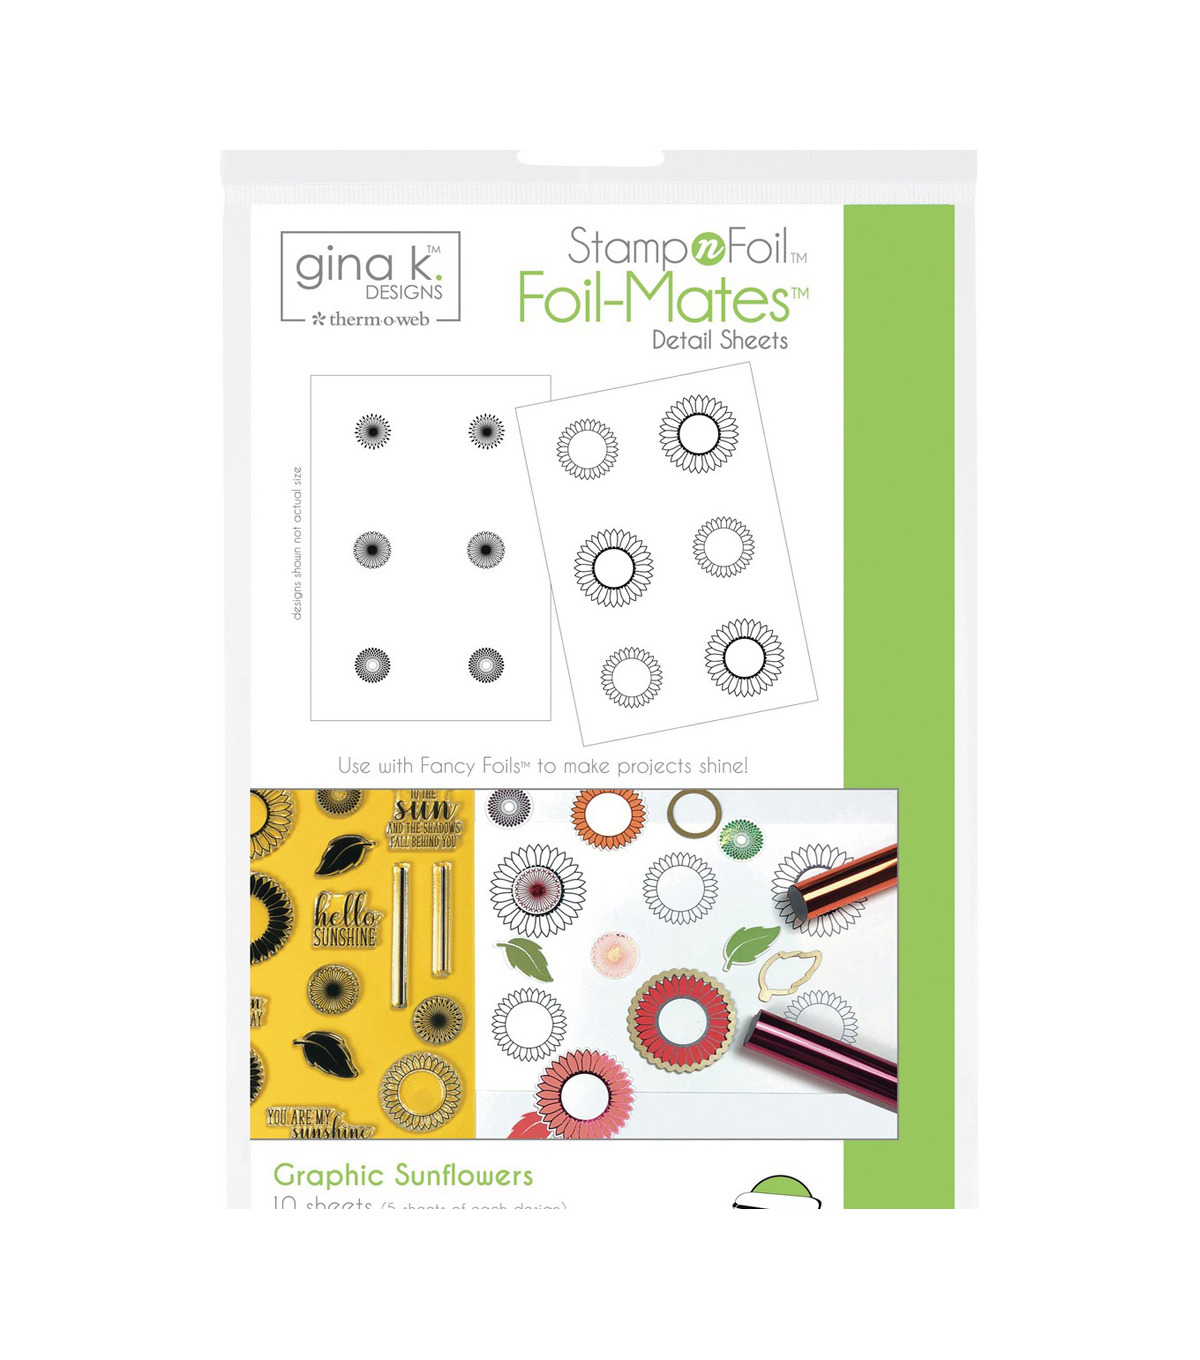 Gina K Designs StampnFoil Foil-Mates Detail Sheets-Graphic Sunflowers